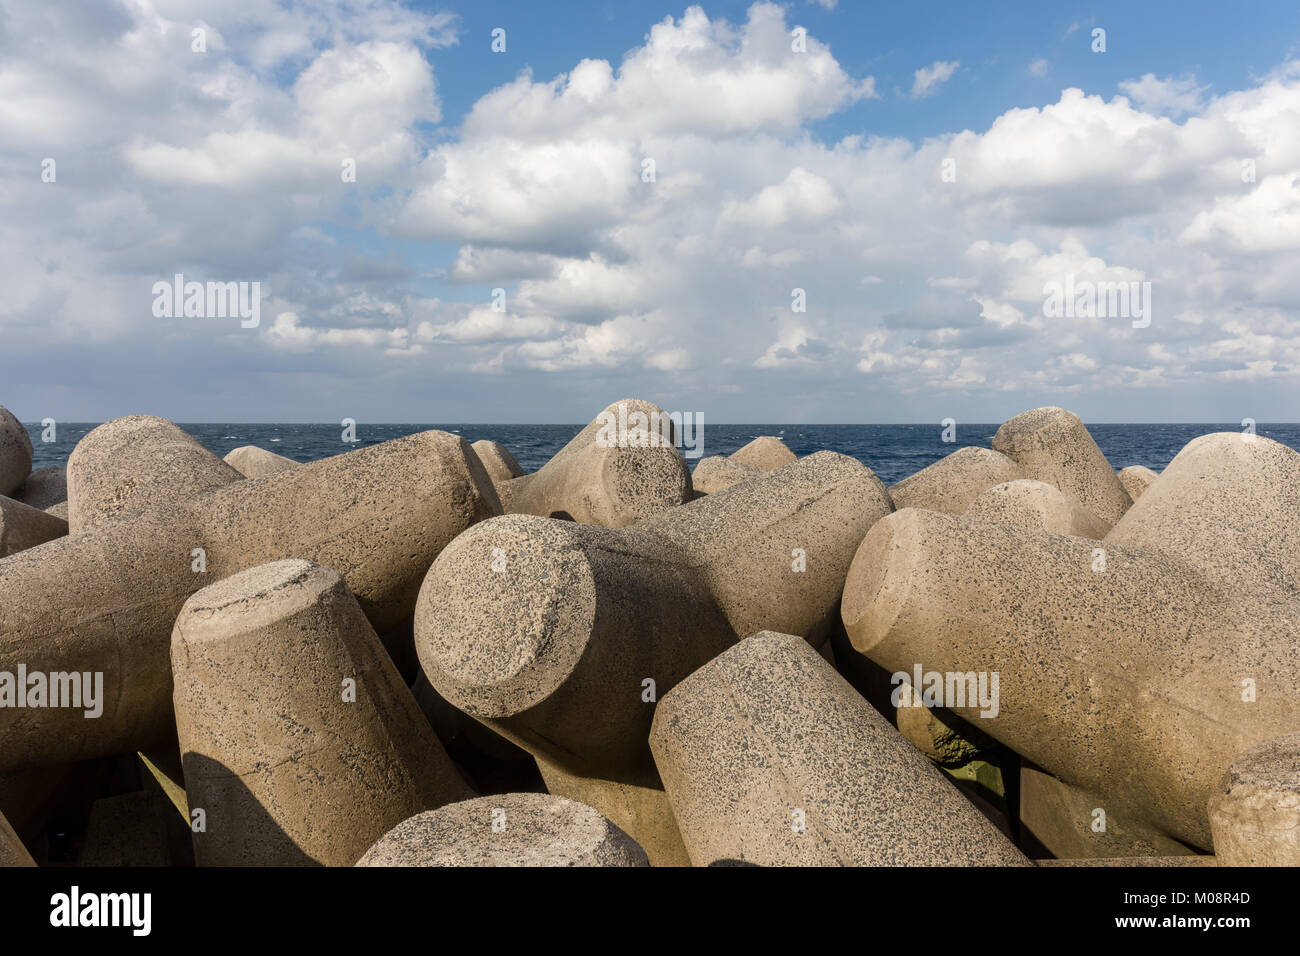 Tetrapods on the coast of Japan; Chigocho, Shimane Prefecture - Stock Image